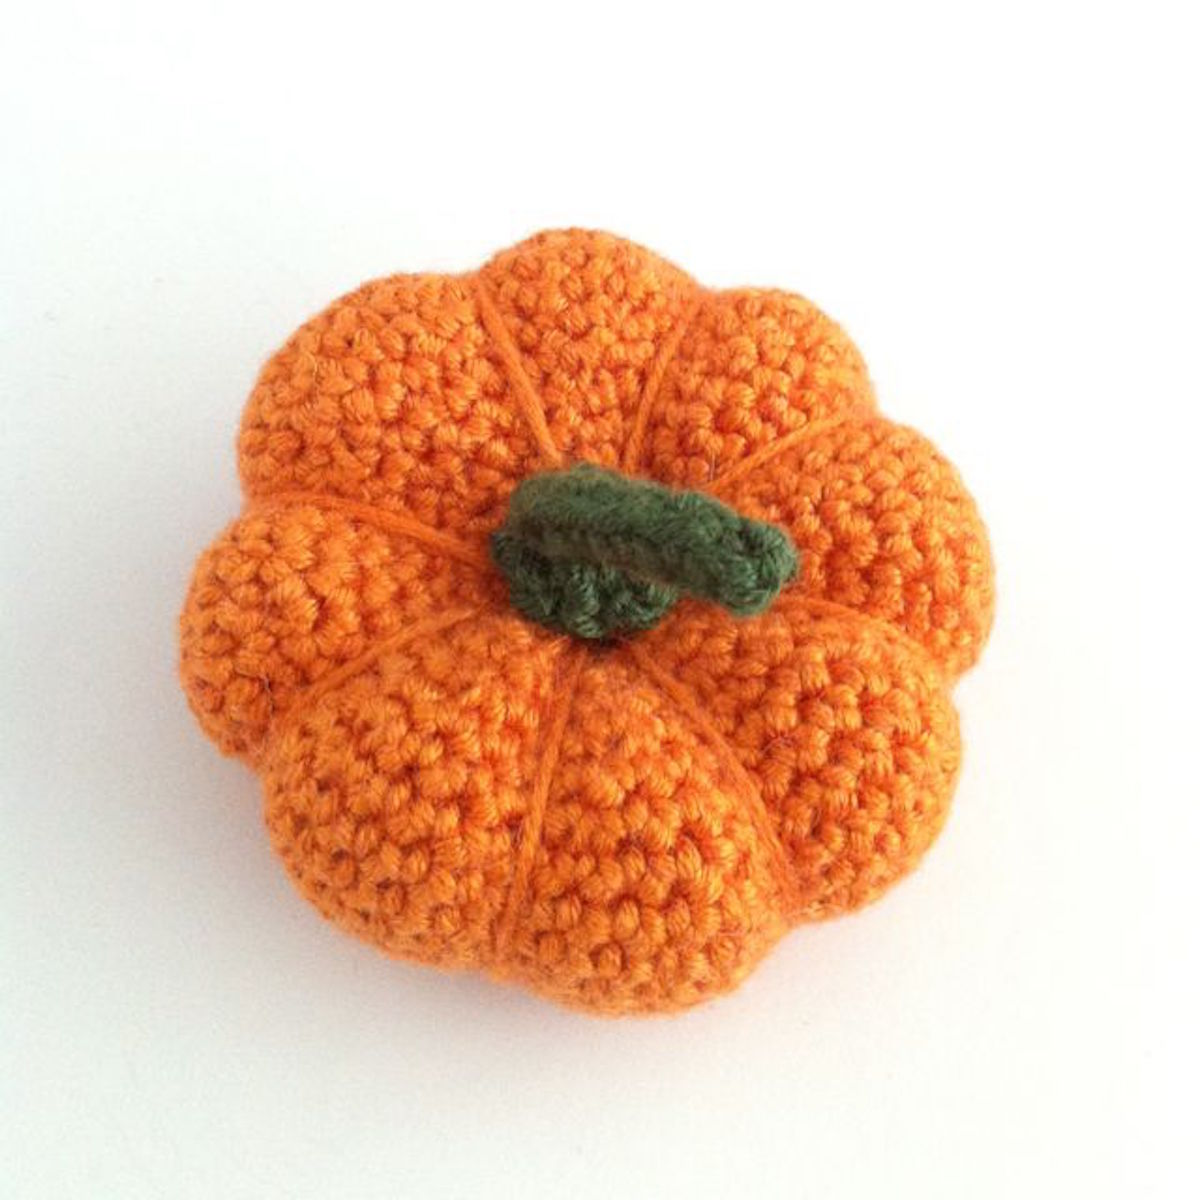 Picture of a hand-crocheted pumpkin